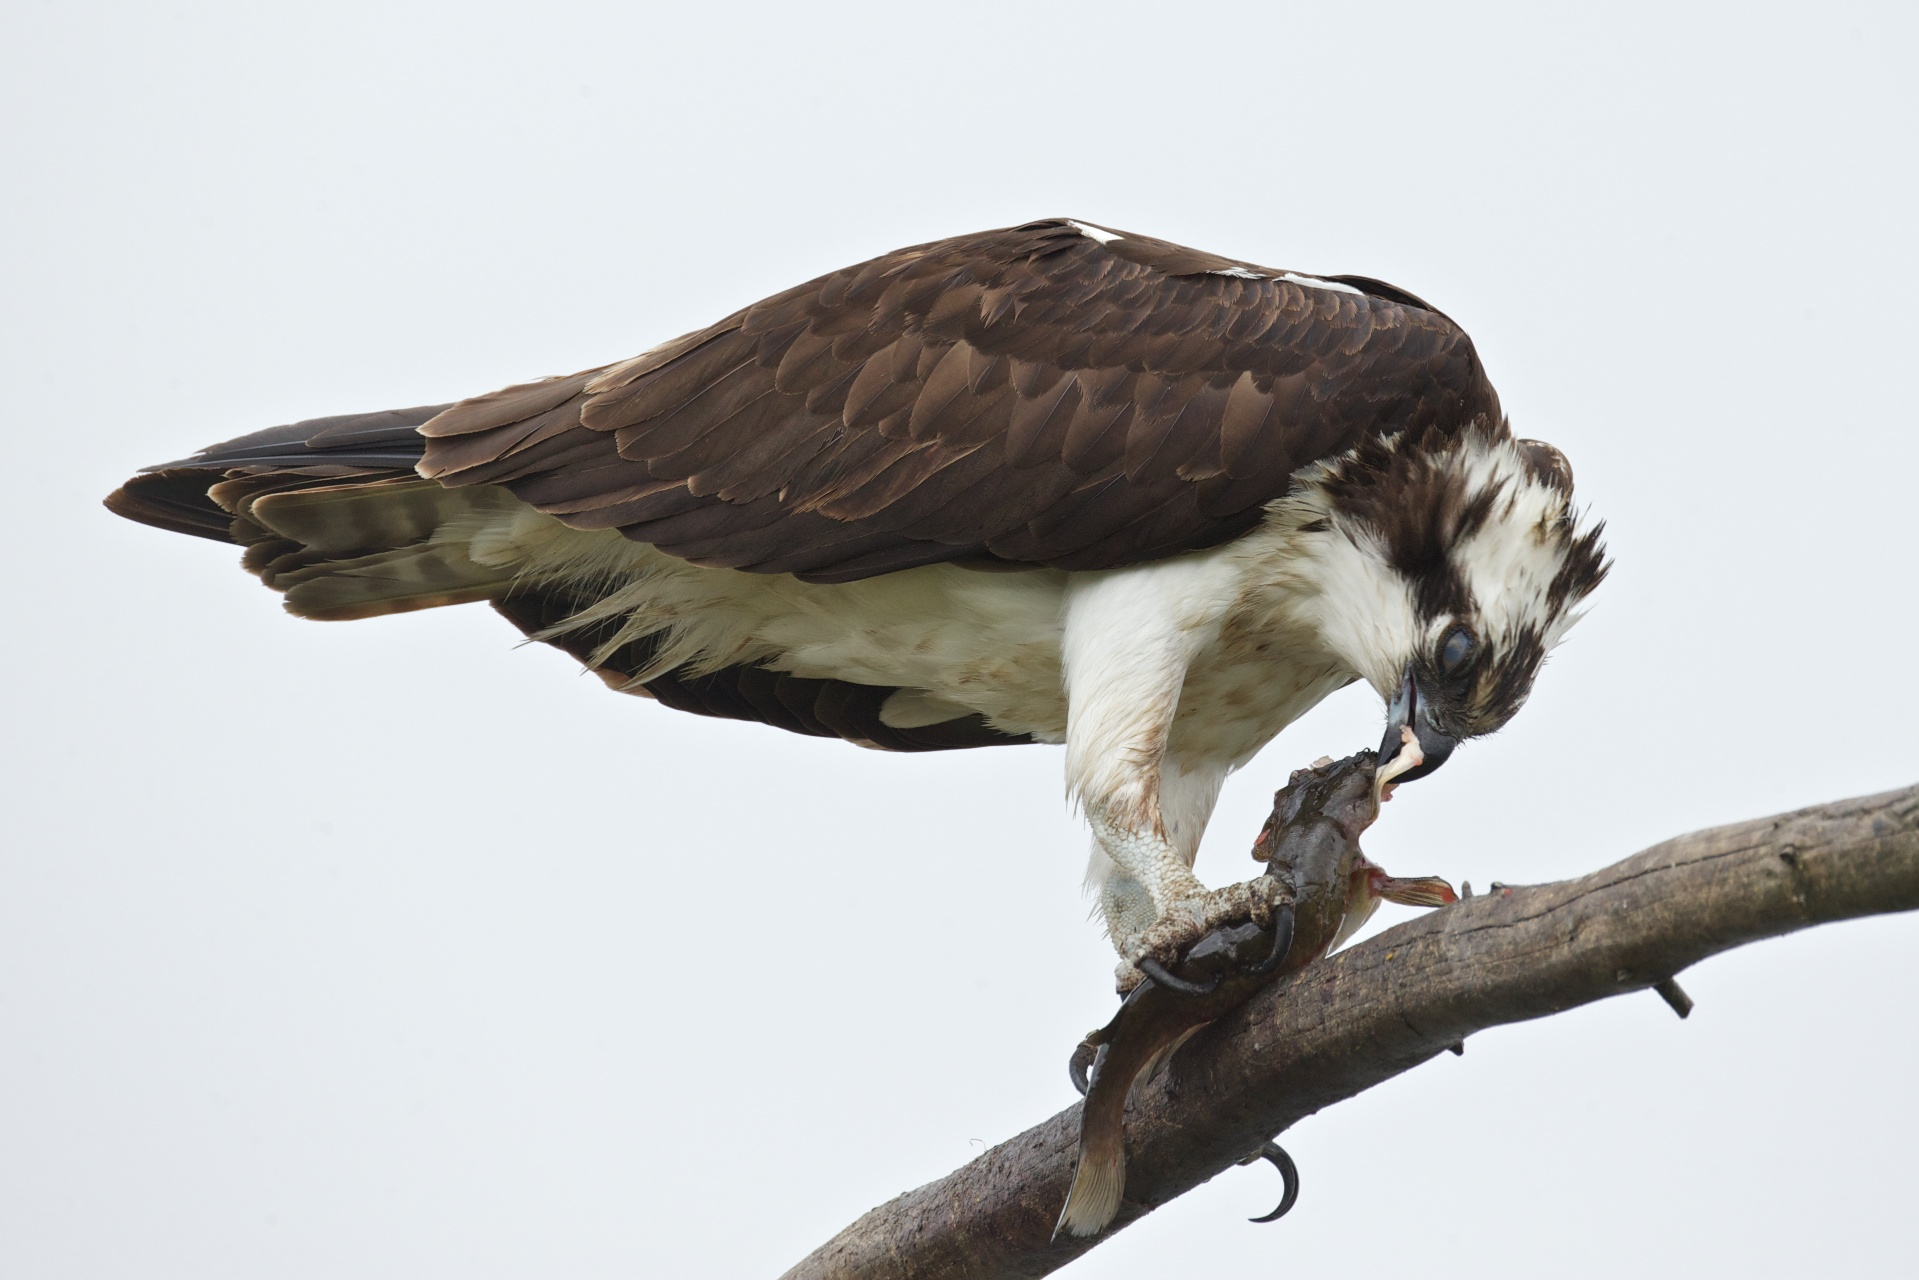 osprey eating fish 7